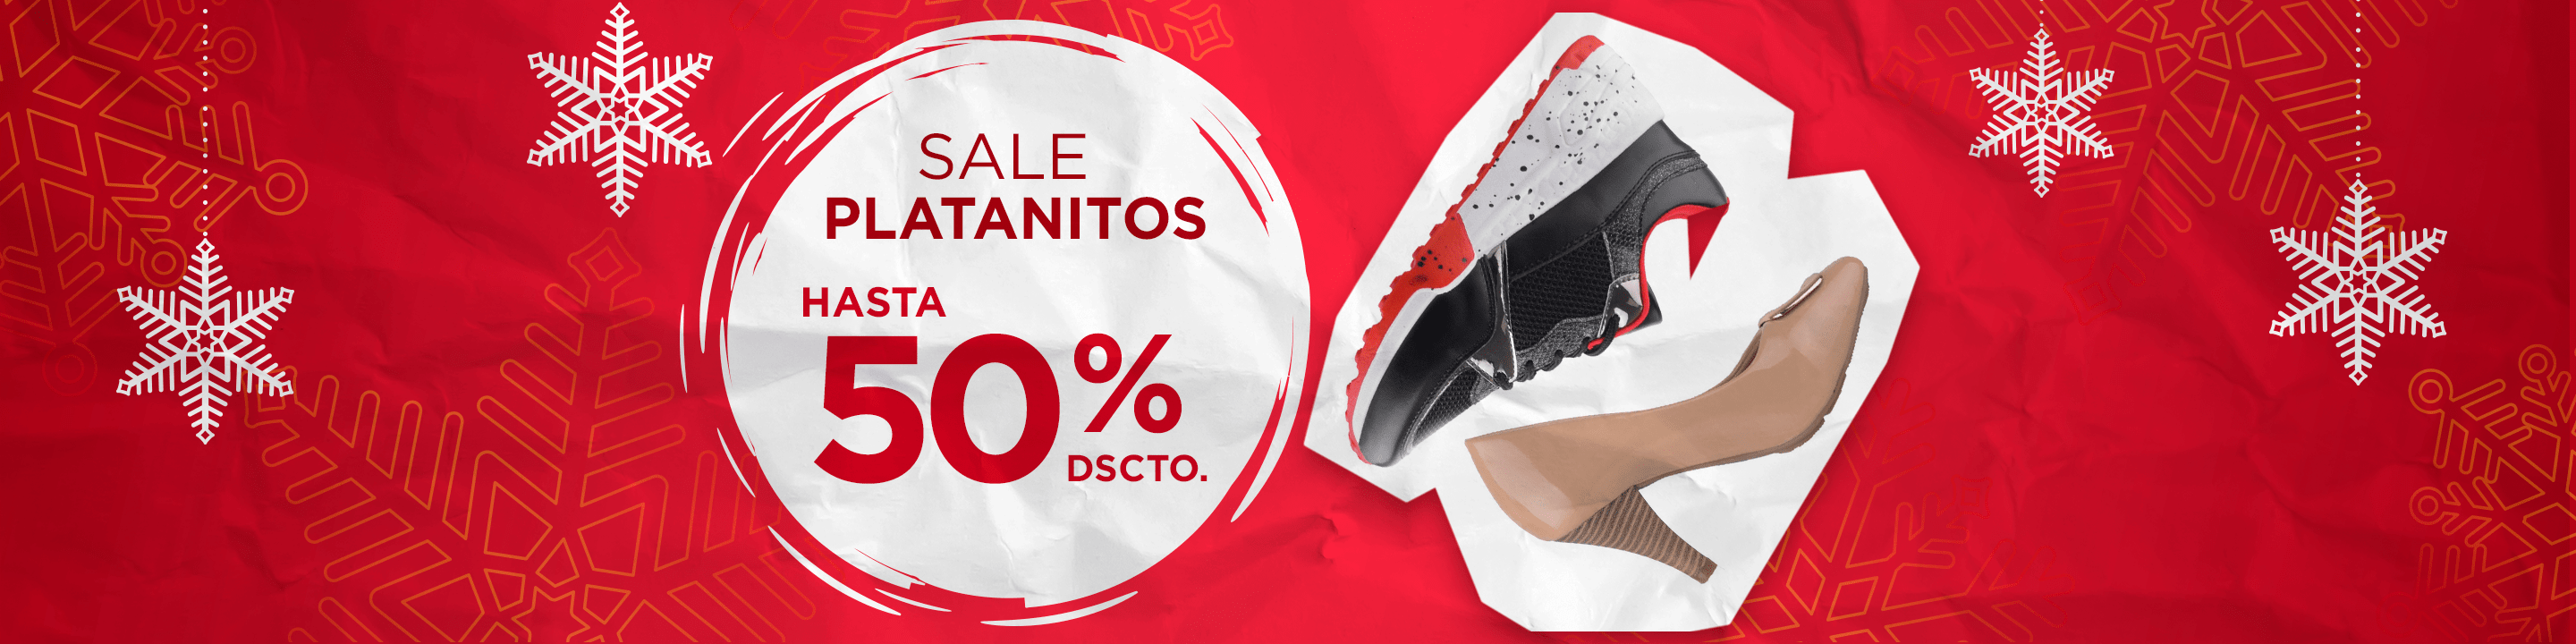 Sale Platanitos Hasta 50% Dscto.